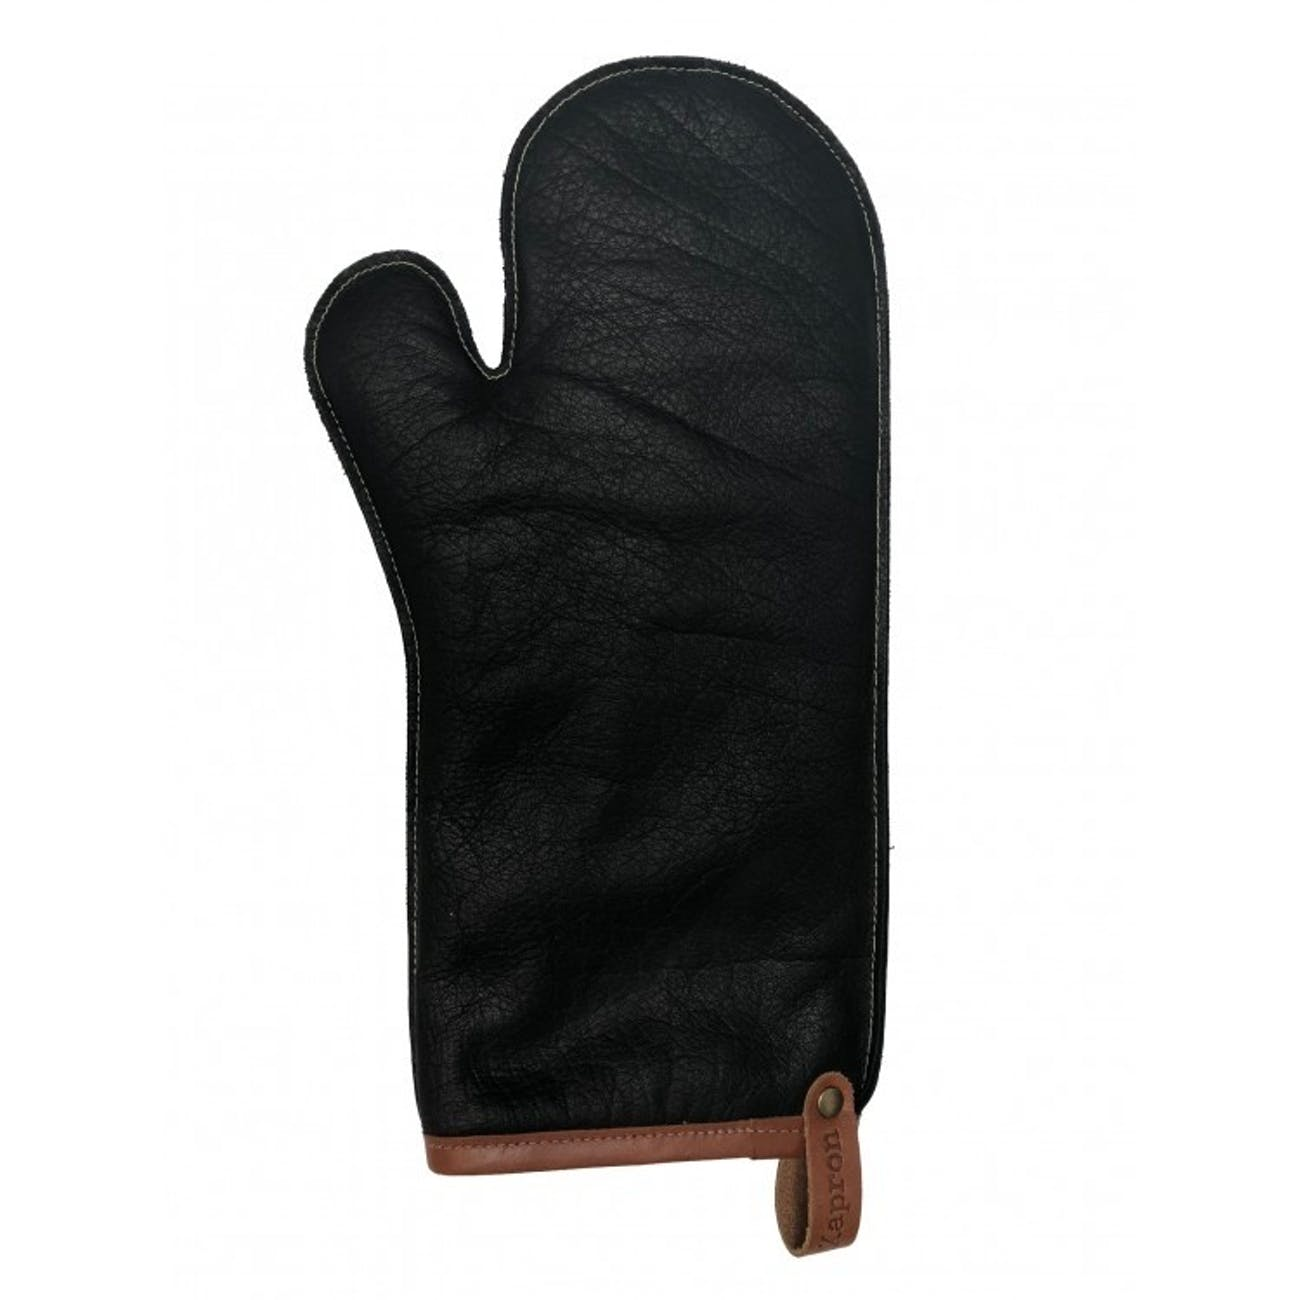 grilling, grill accessories, oven mitts